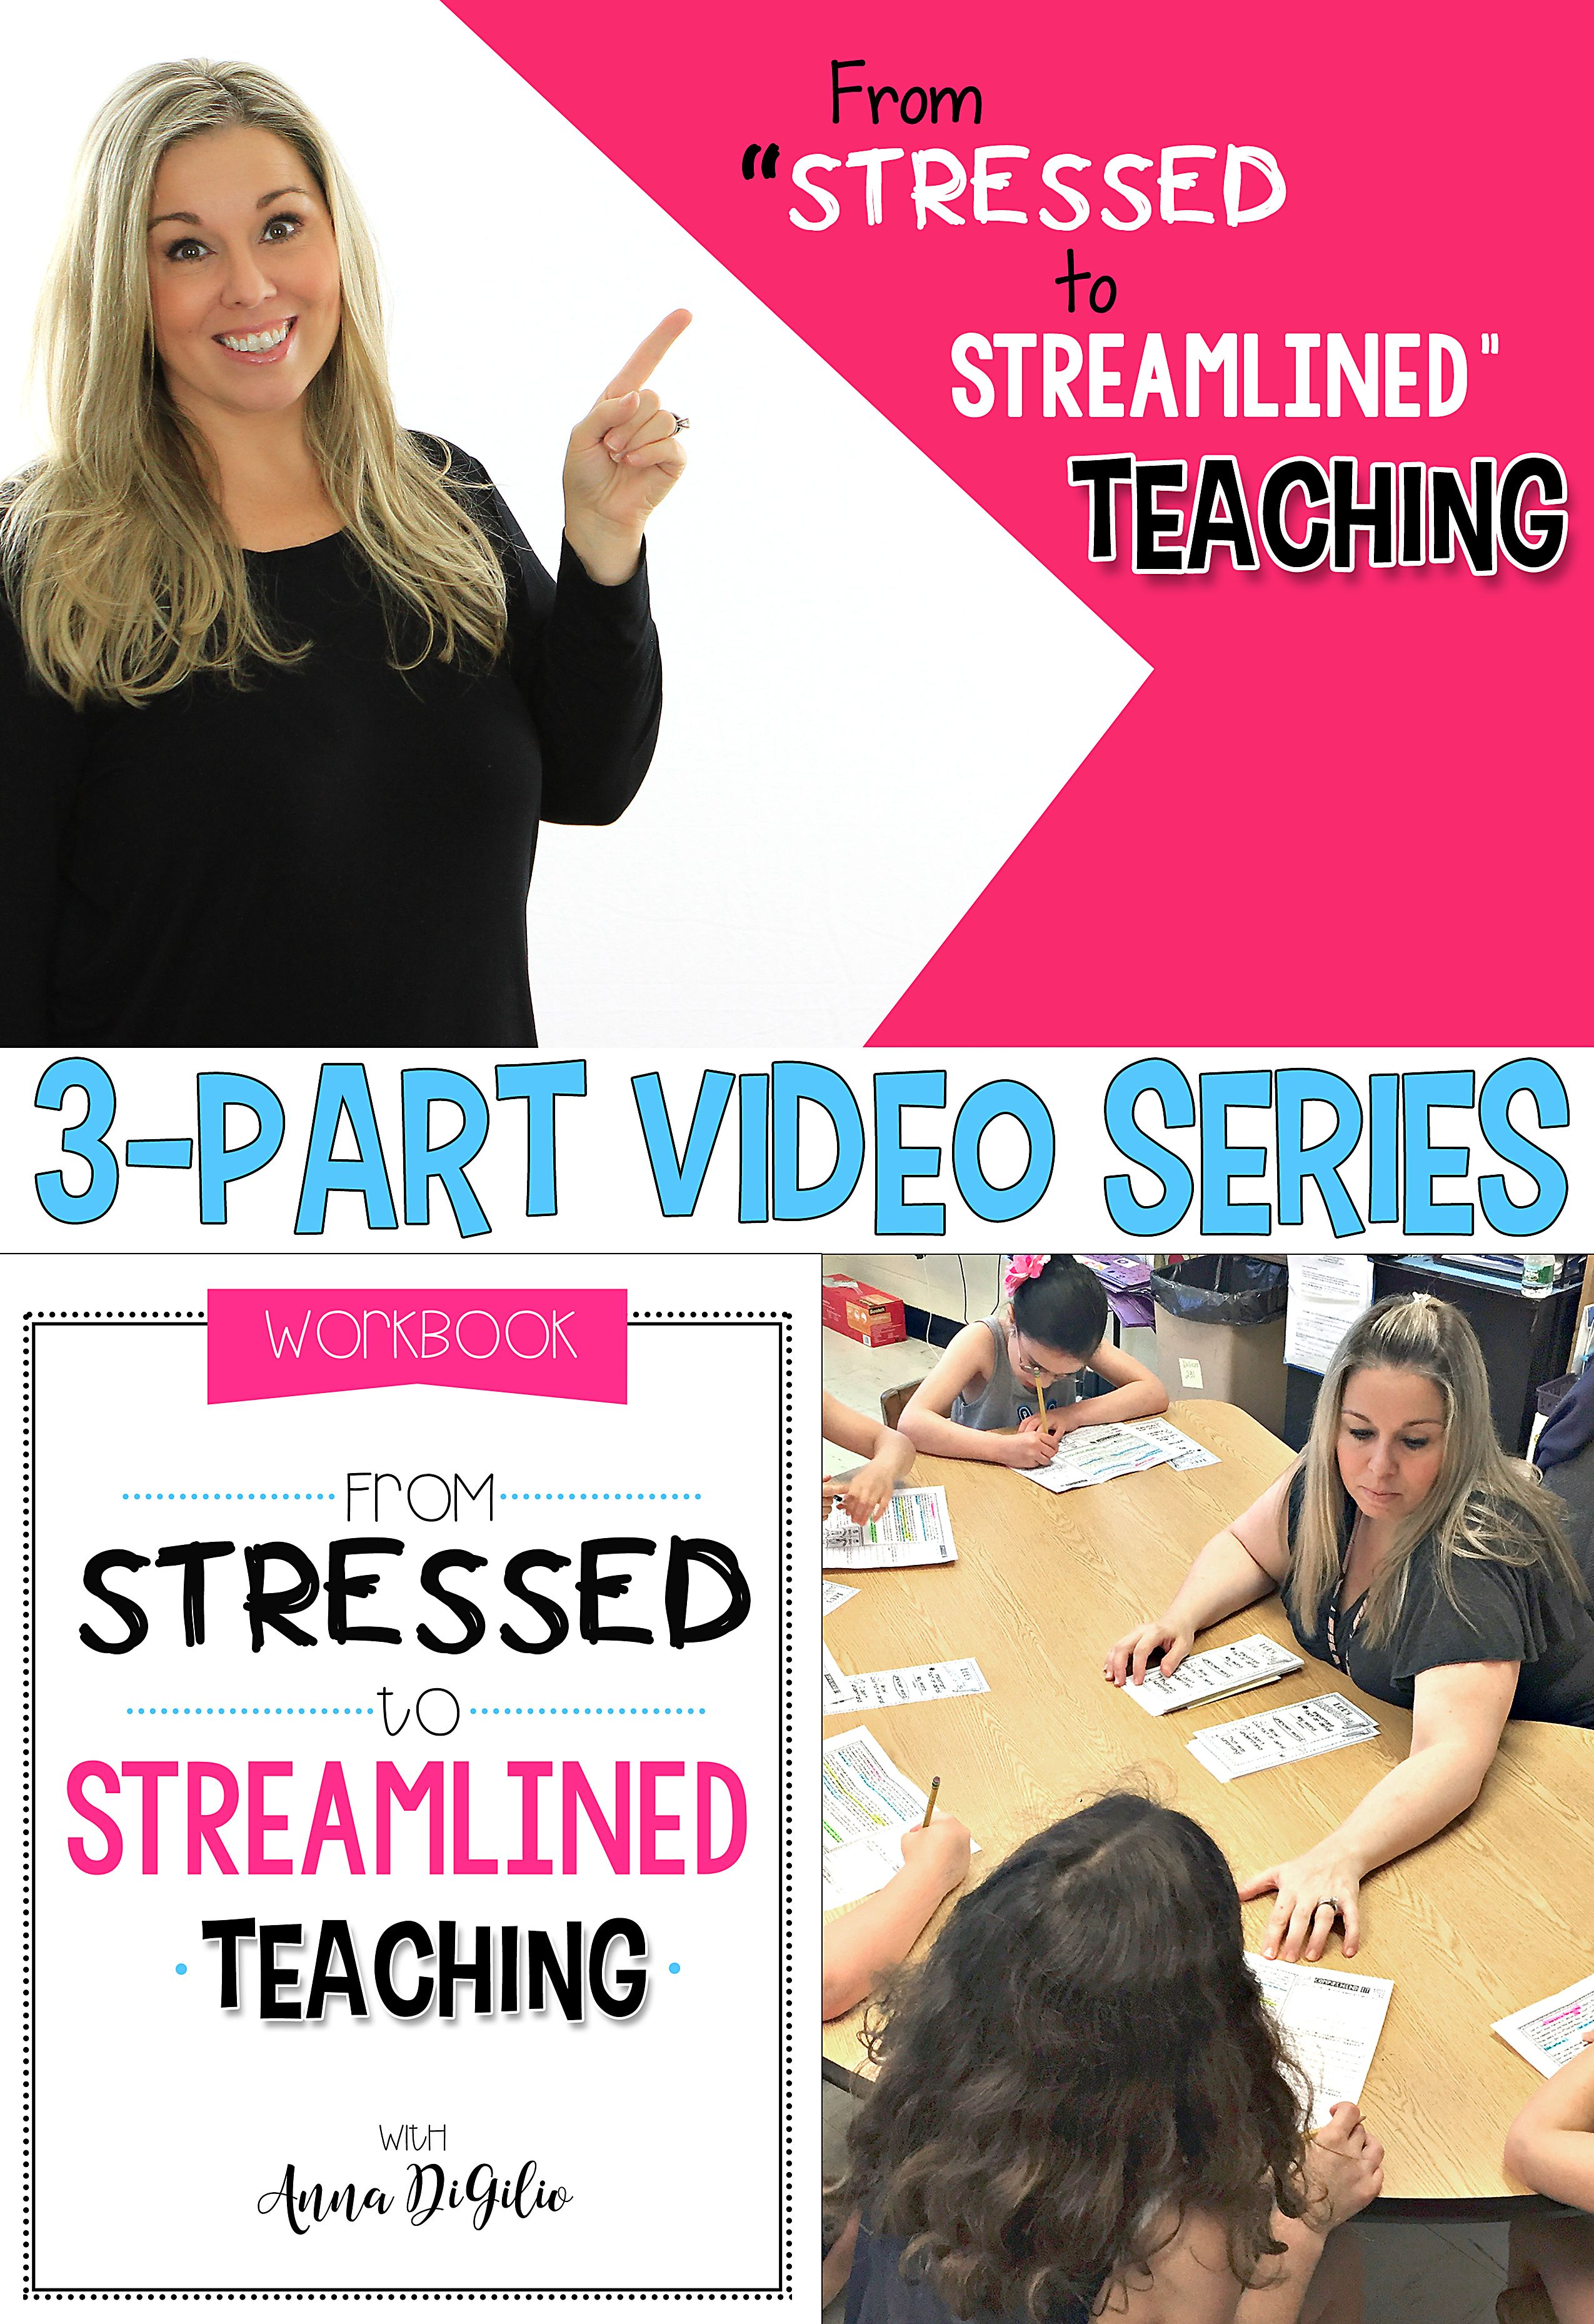 Join Anna for a 3-Part FREE Video Series on How to go From Stressed to Streamlined Teaching! Click here to DOWNLOAD your FREE workbook and watch Video #1.